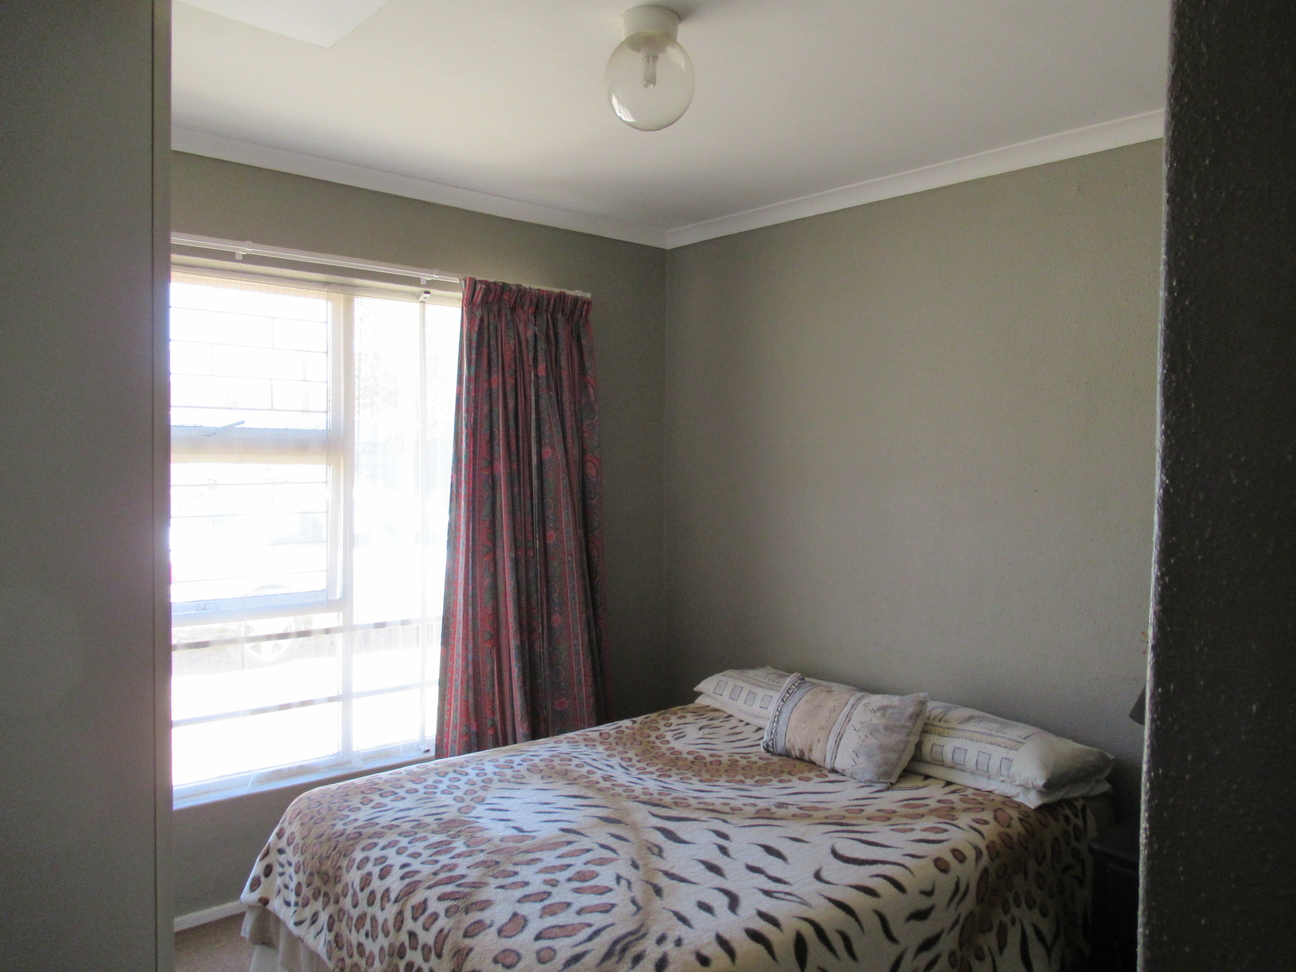 3 Bedroom House for sale in Strand South ENT0082002 : photo#5